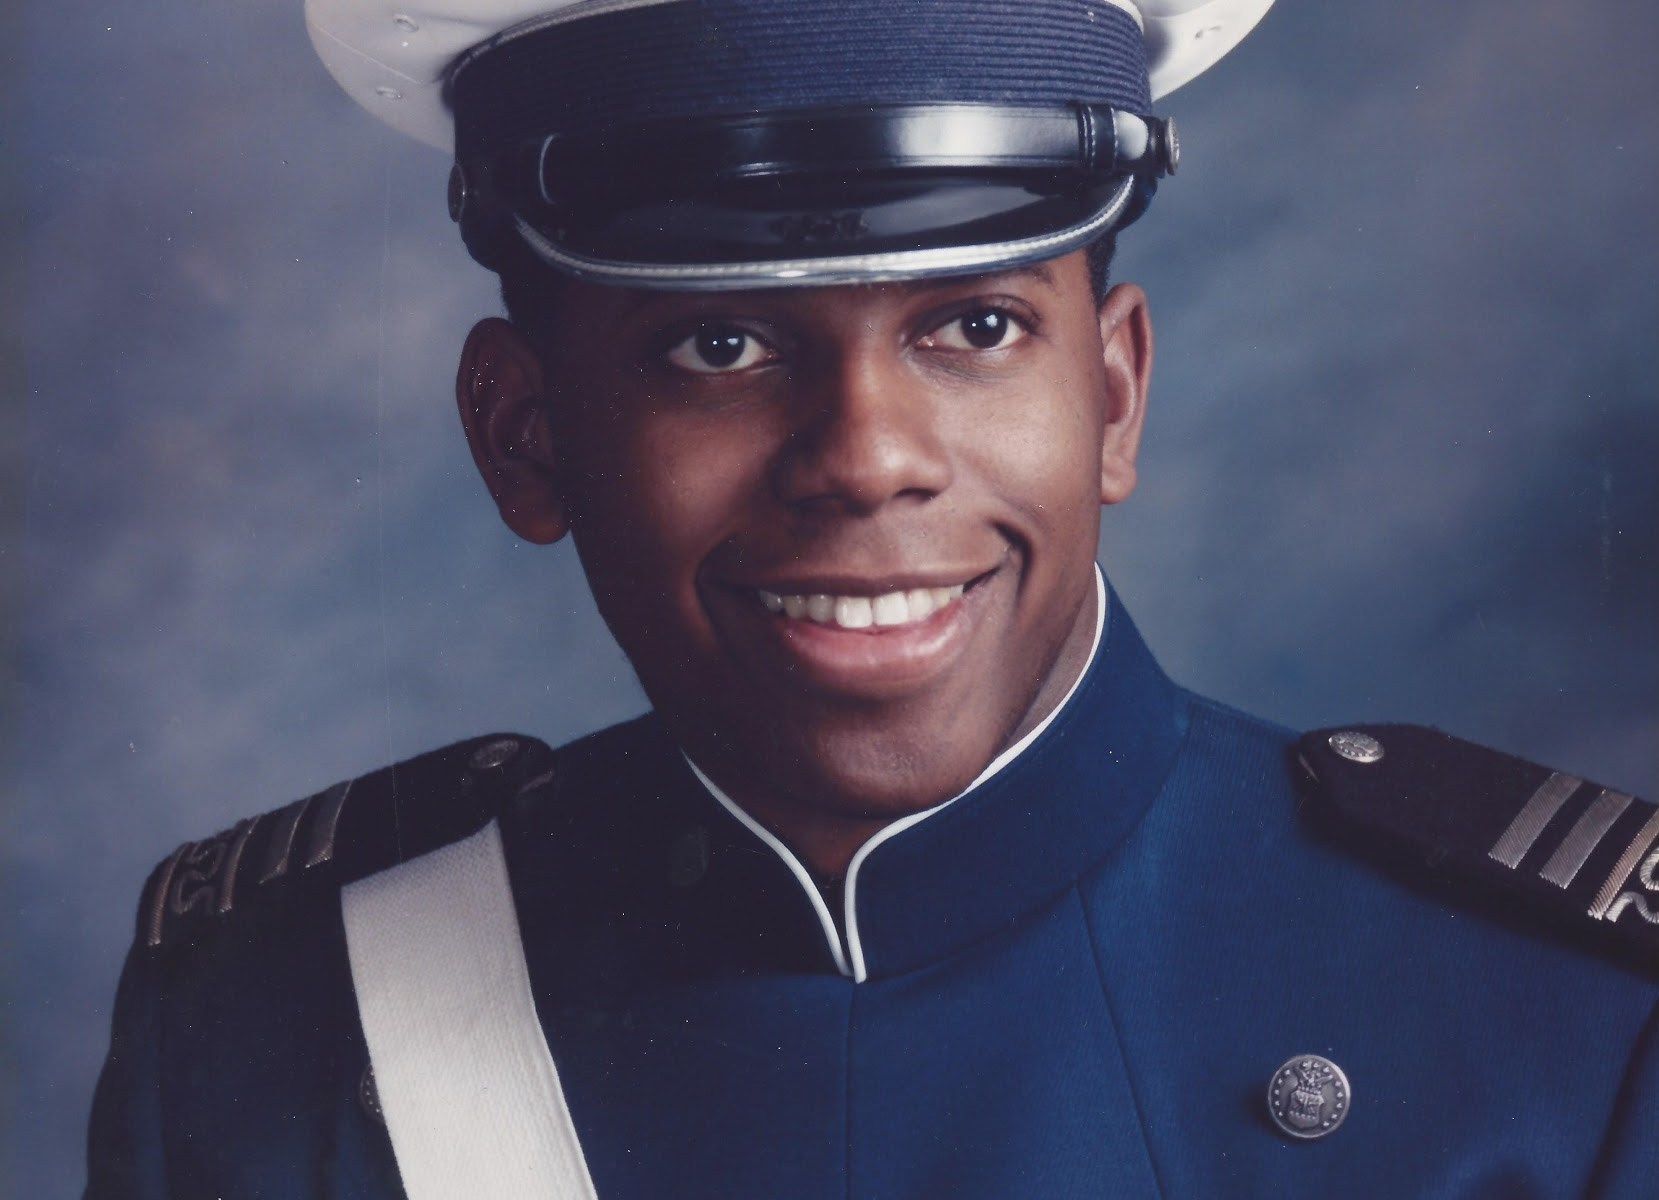 USAFA-Senior-Photo-1.jpg